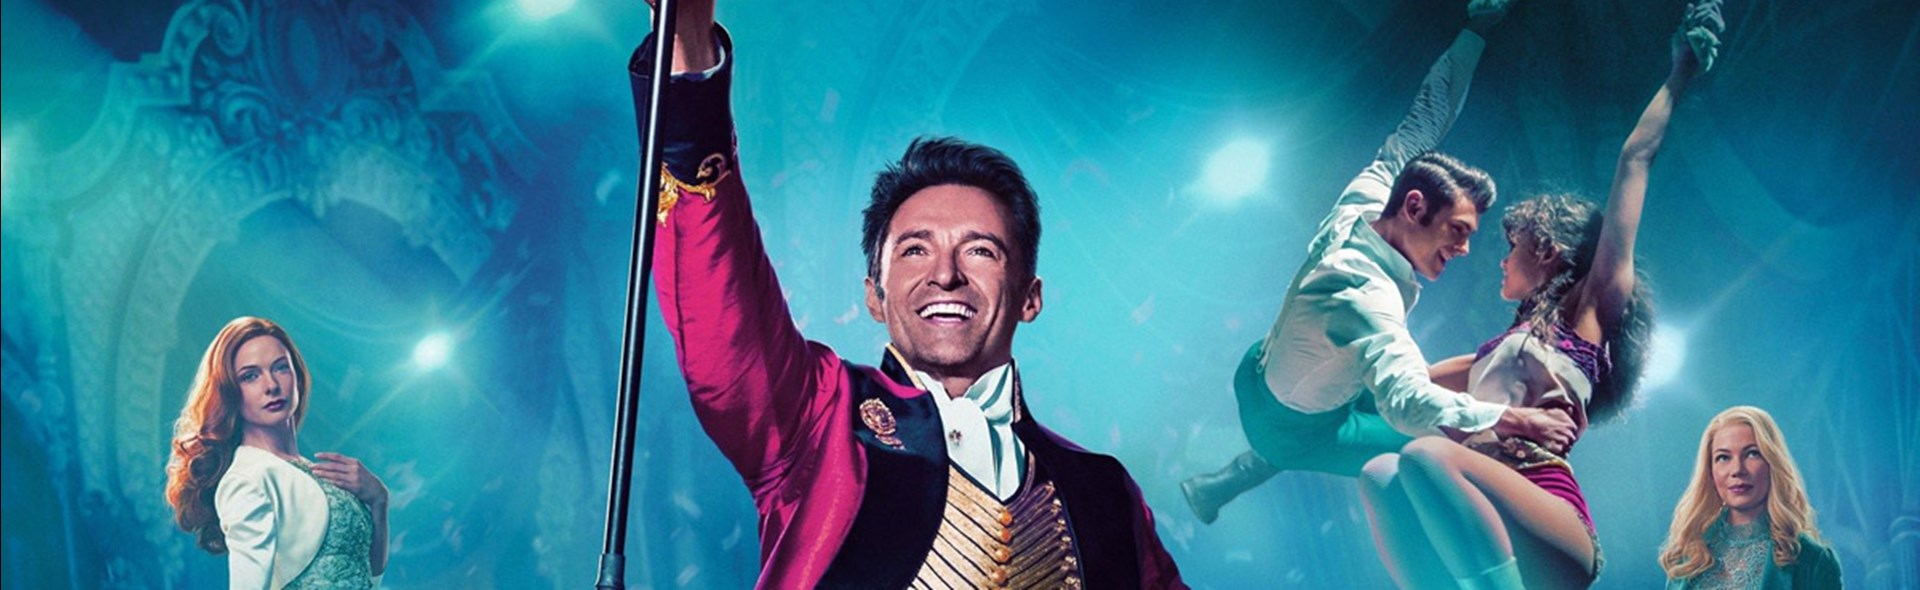 Singalong: The Greatest Showman (PG)